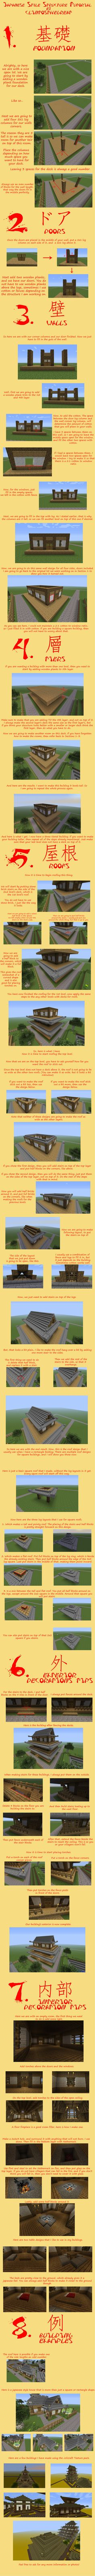 japanese_structure_tutorial_by_clintosthegreat-d4xd99z.jpg 500×13.625 piksel